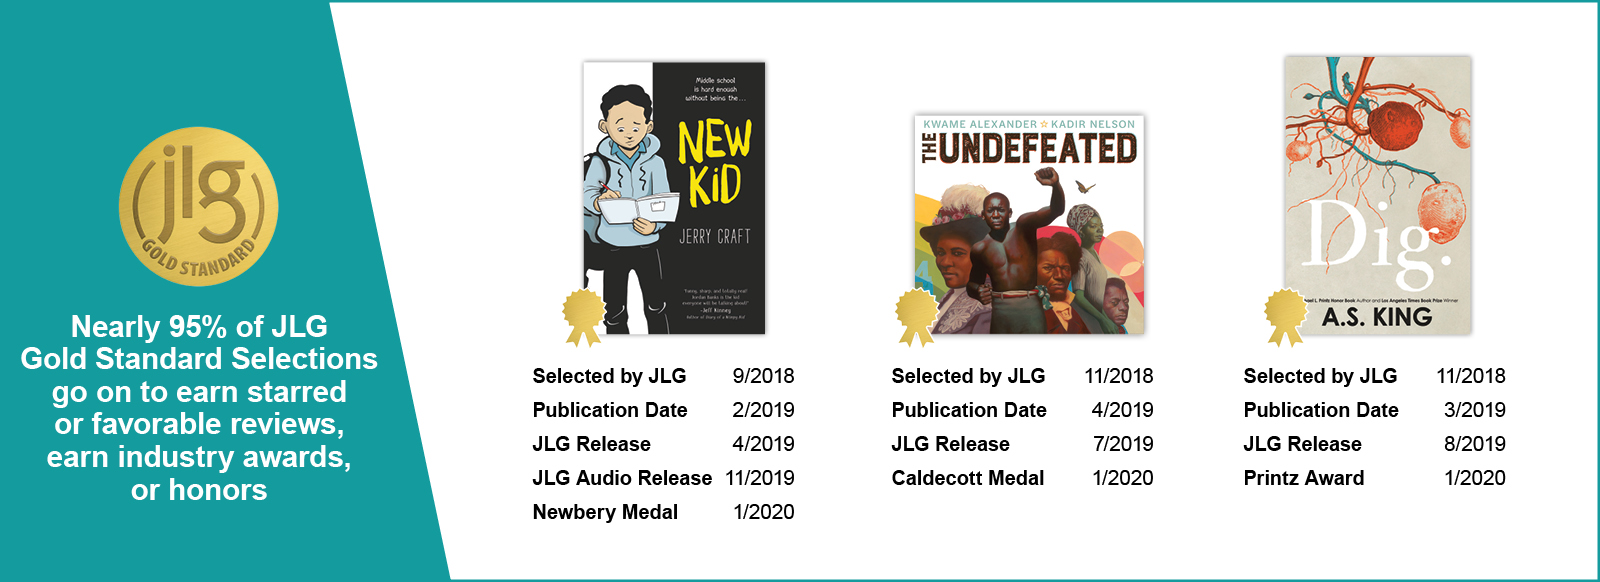 JLG Selections - Award Winning Books